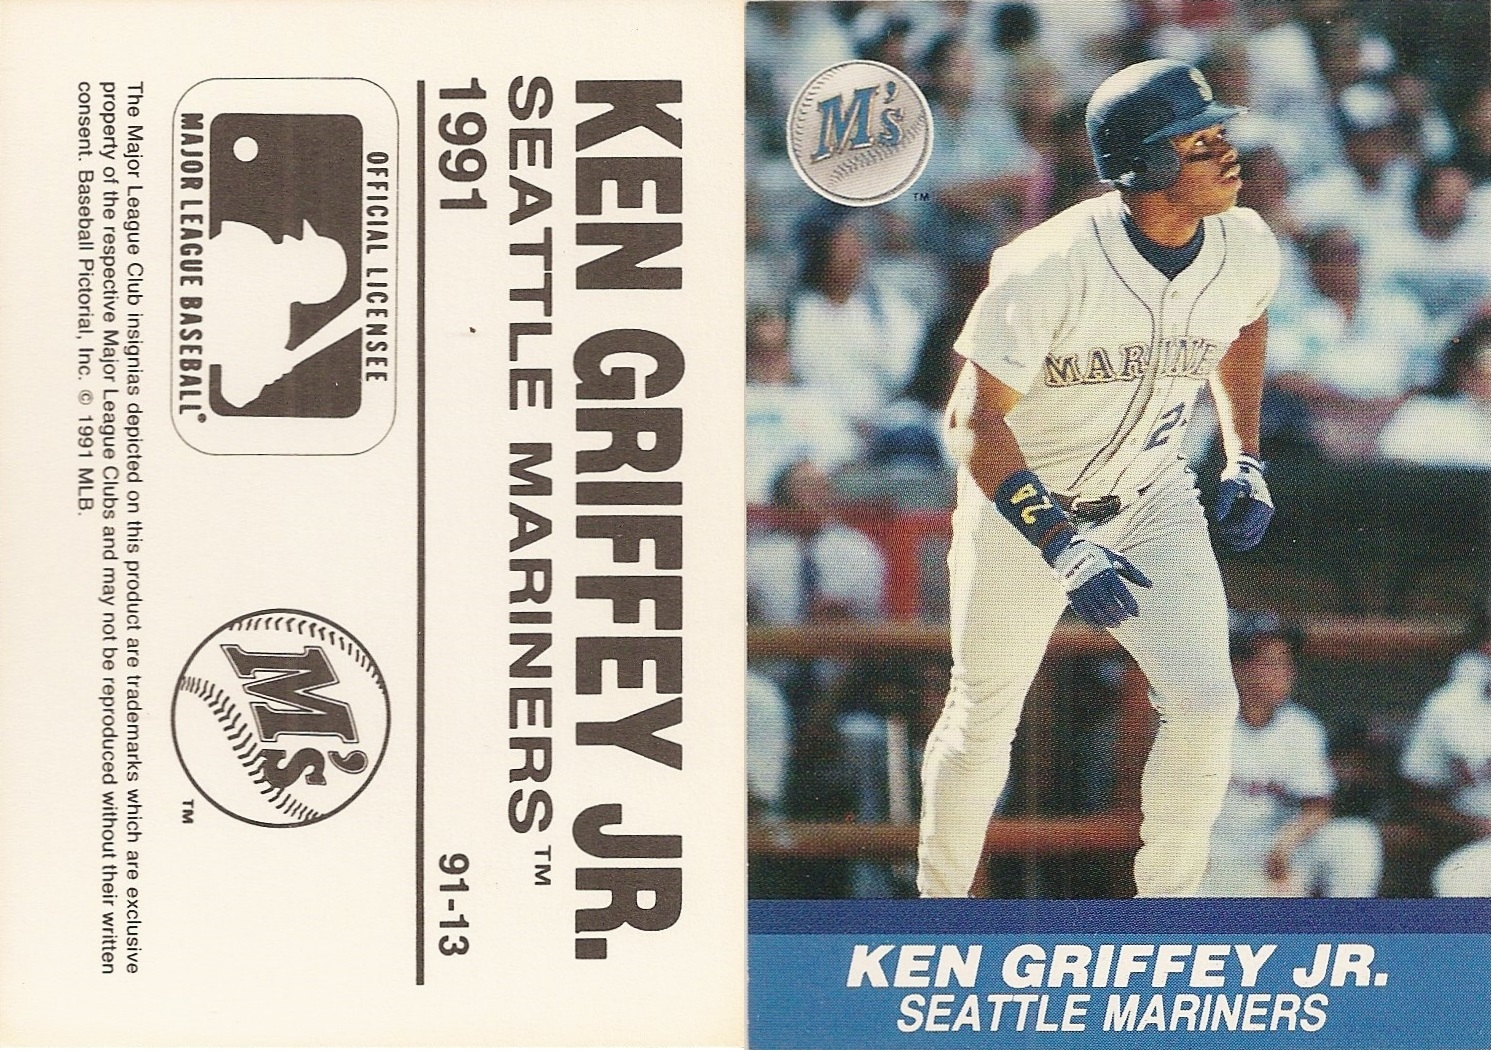 a44c6dec66 Ken Griffey Jr Price List - Supercollector Catalog